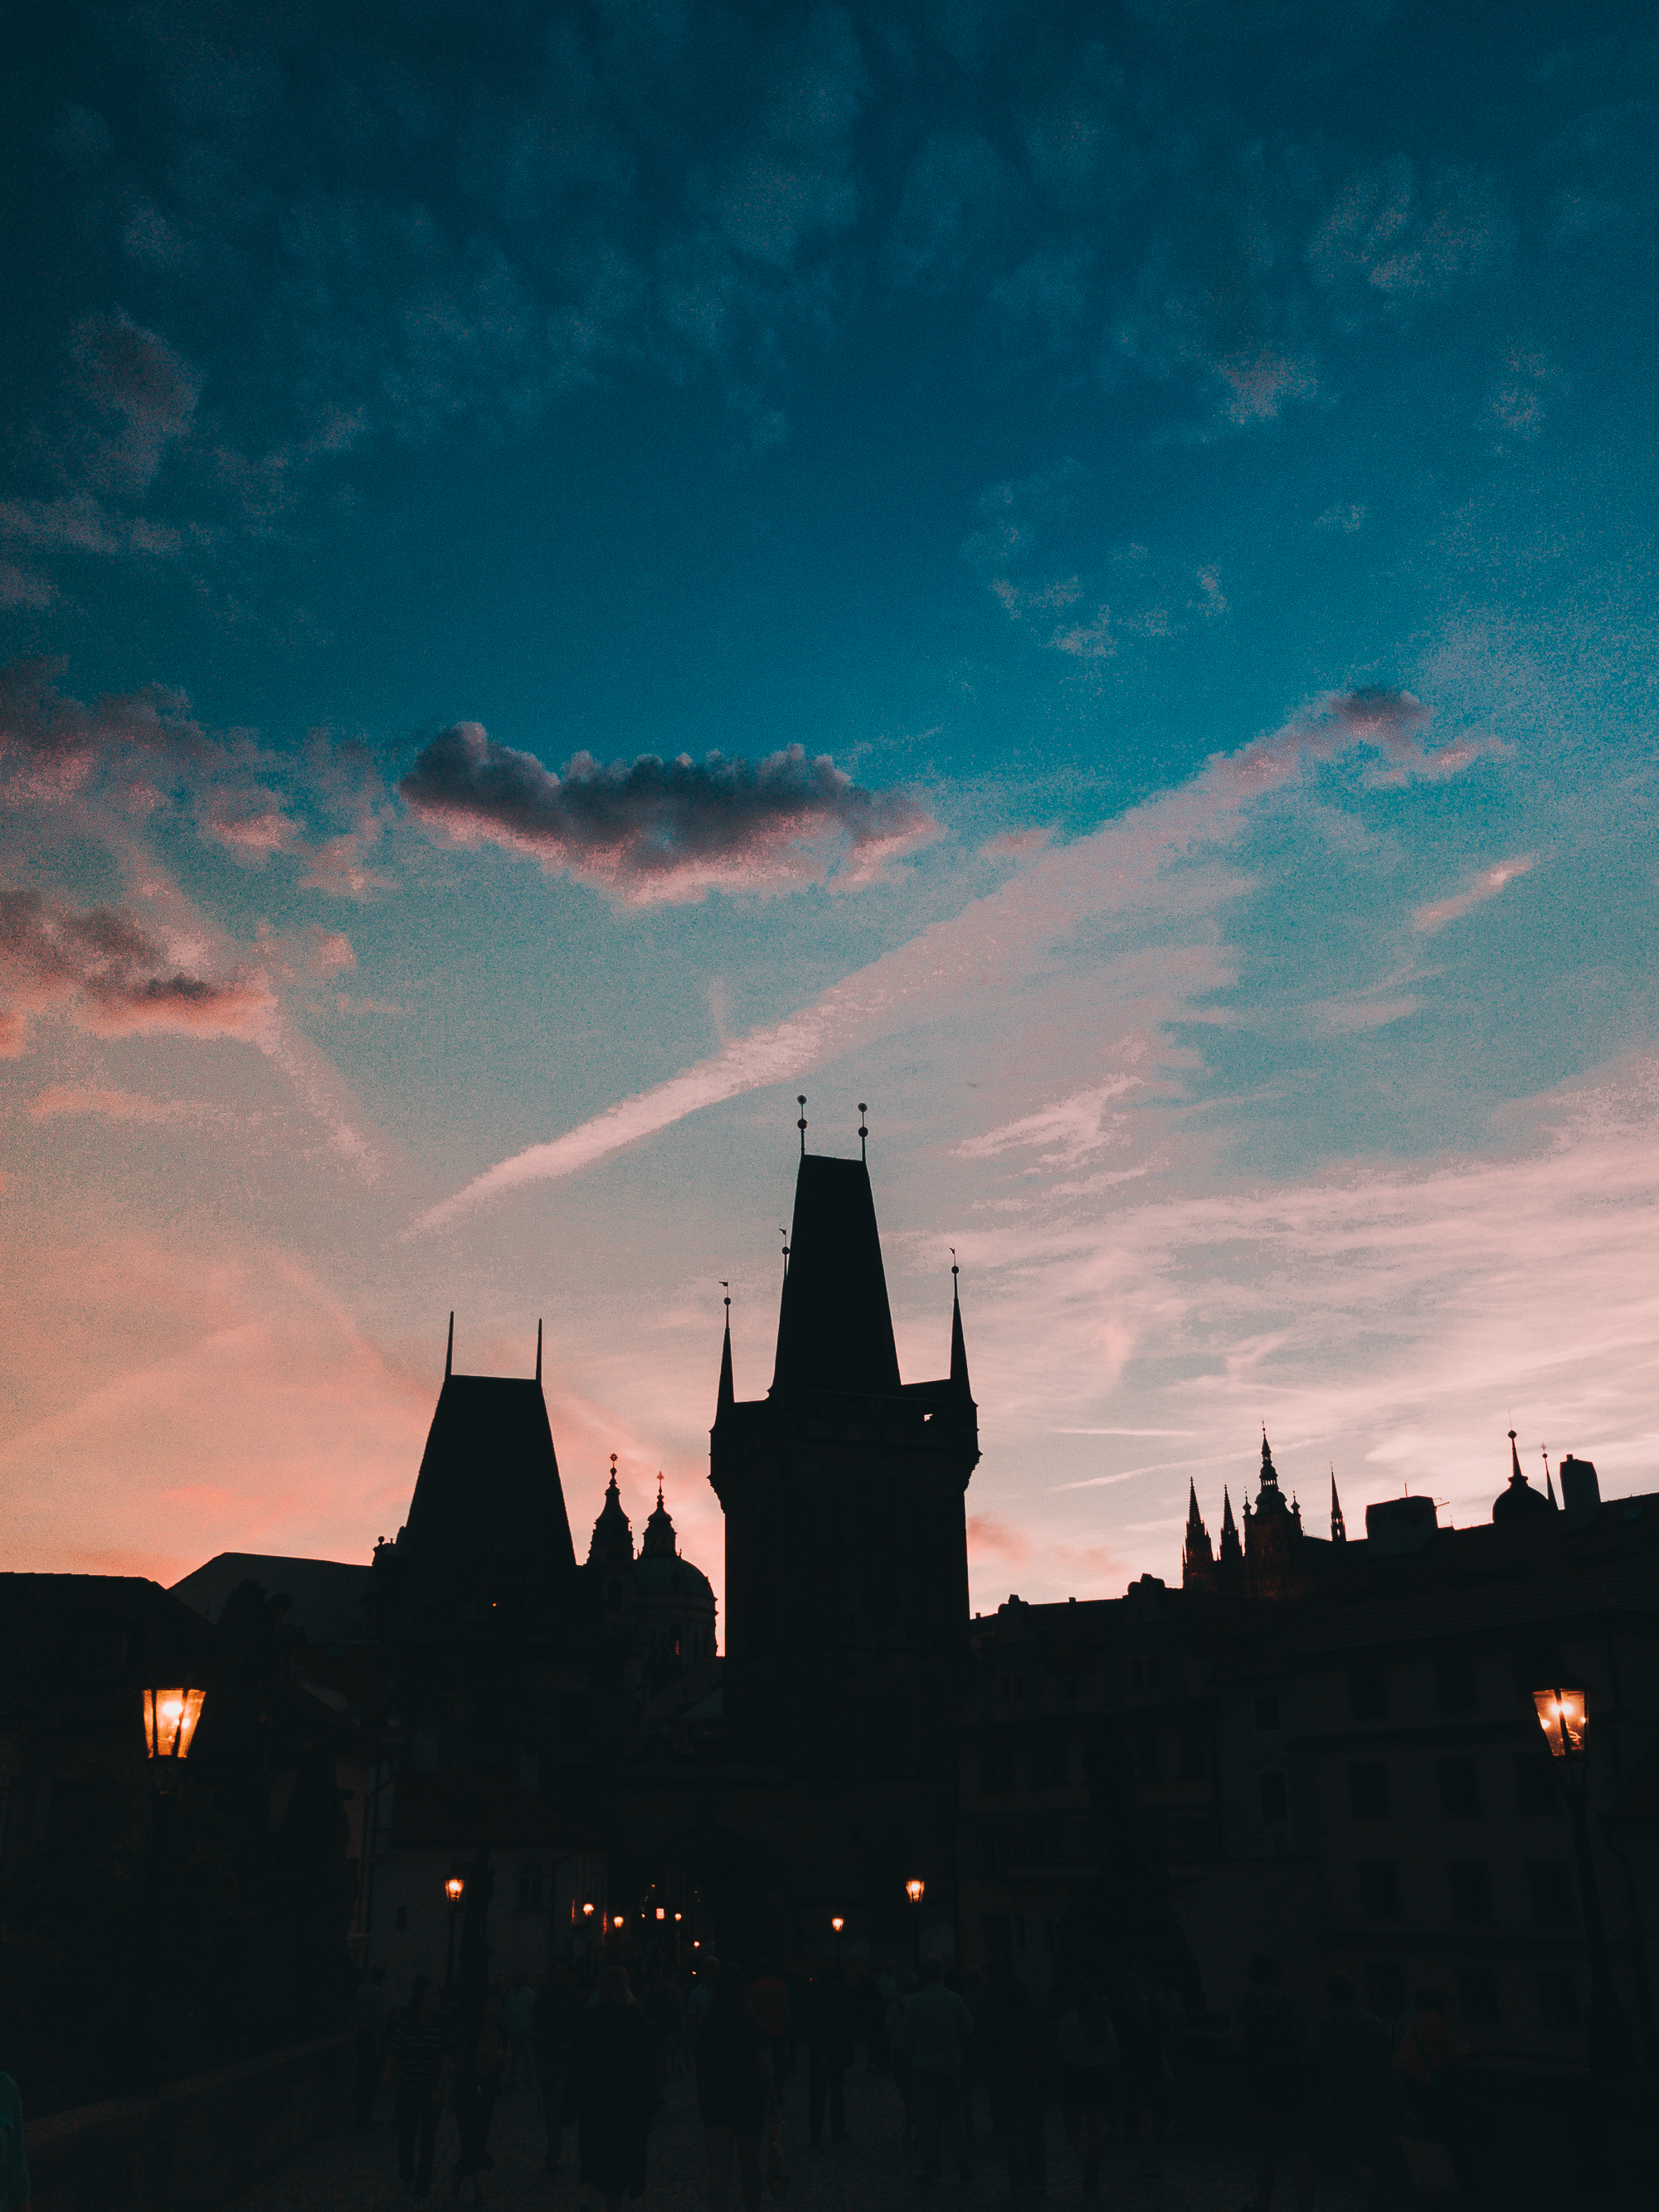 Discover Prague With bitplay 2017- iPhone 7 Plus - bitplay Wide Angle - Yes! Please Enjoy-22.jpg